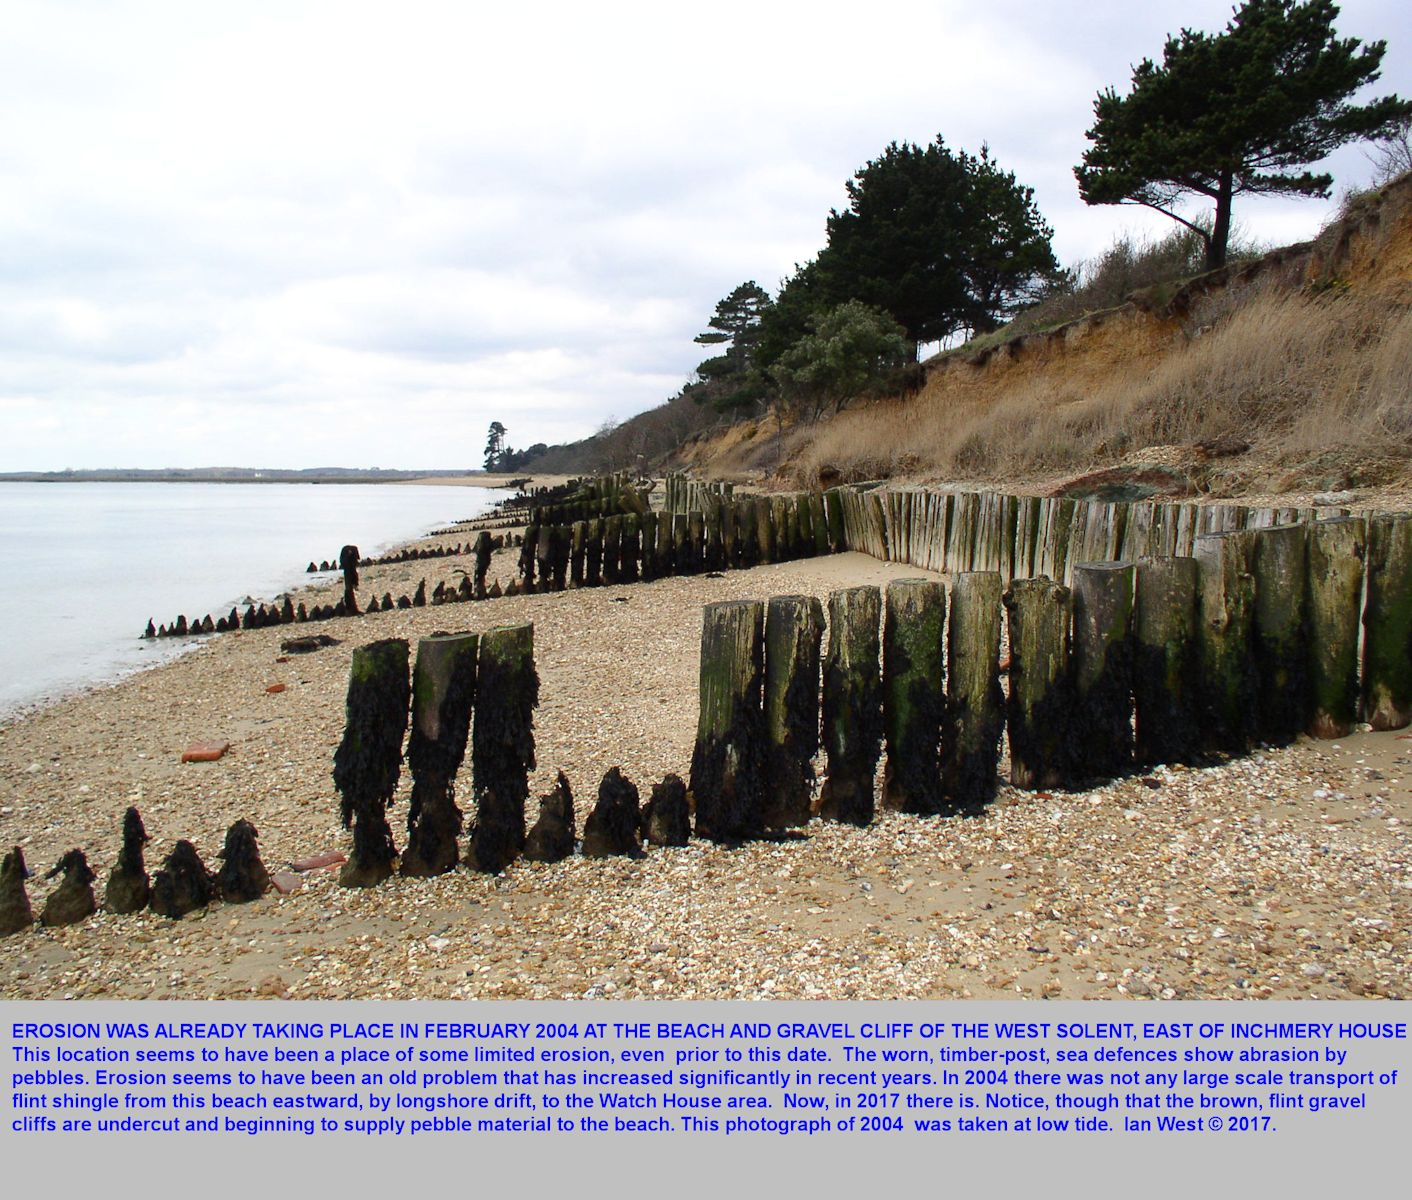 An old photograph of 2004, showing eroded sea-defences of posts at low tide, east of Inchmery, near Lepe Beach